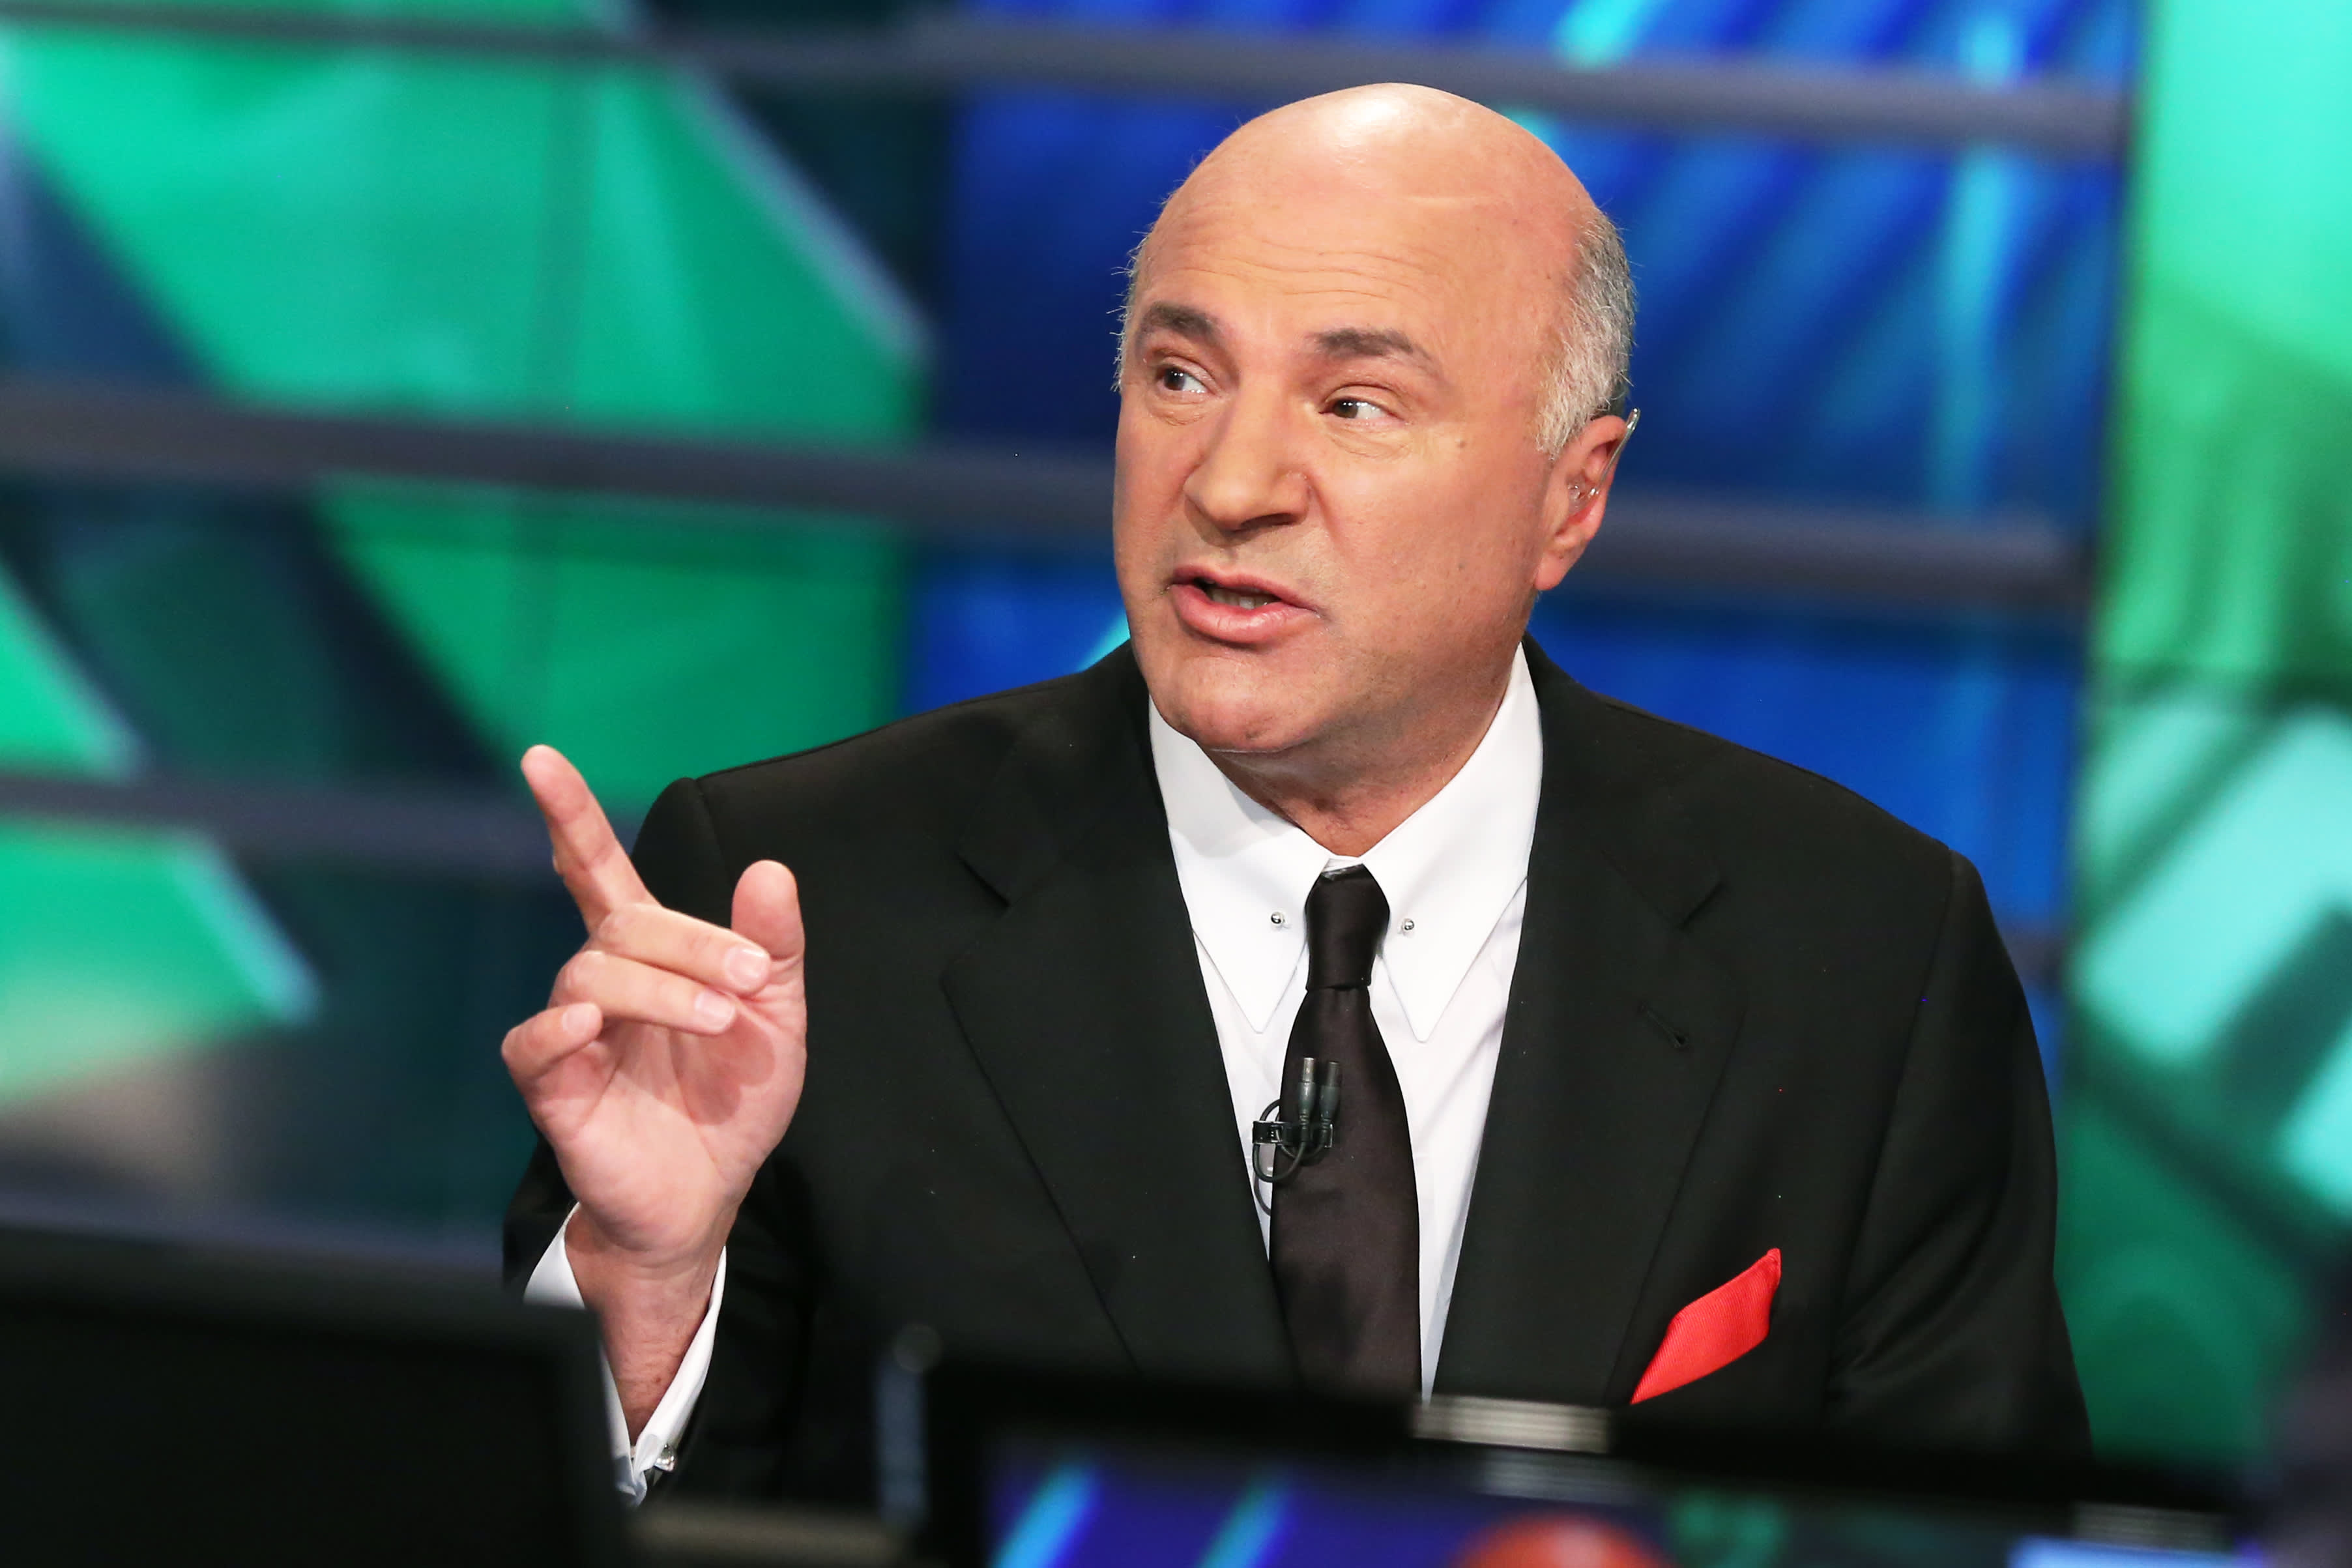 Kevin O'Leary: This is the age when you should have at least $100,000 saved